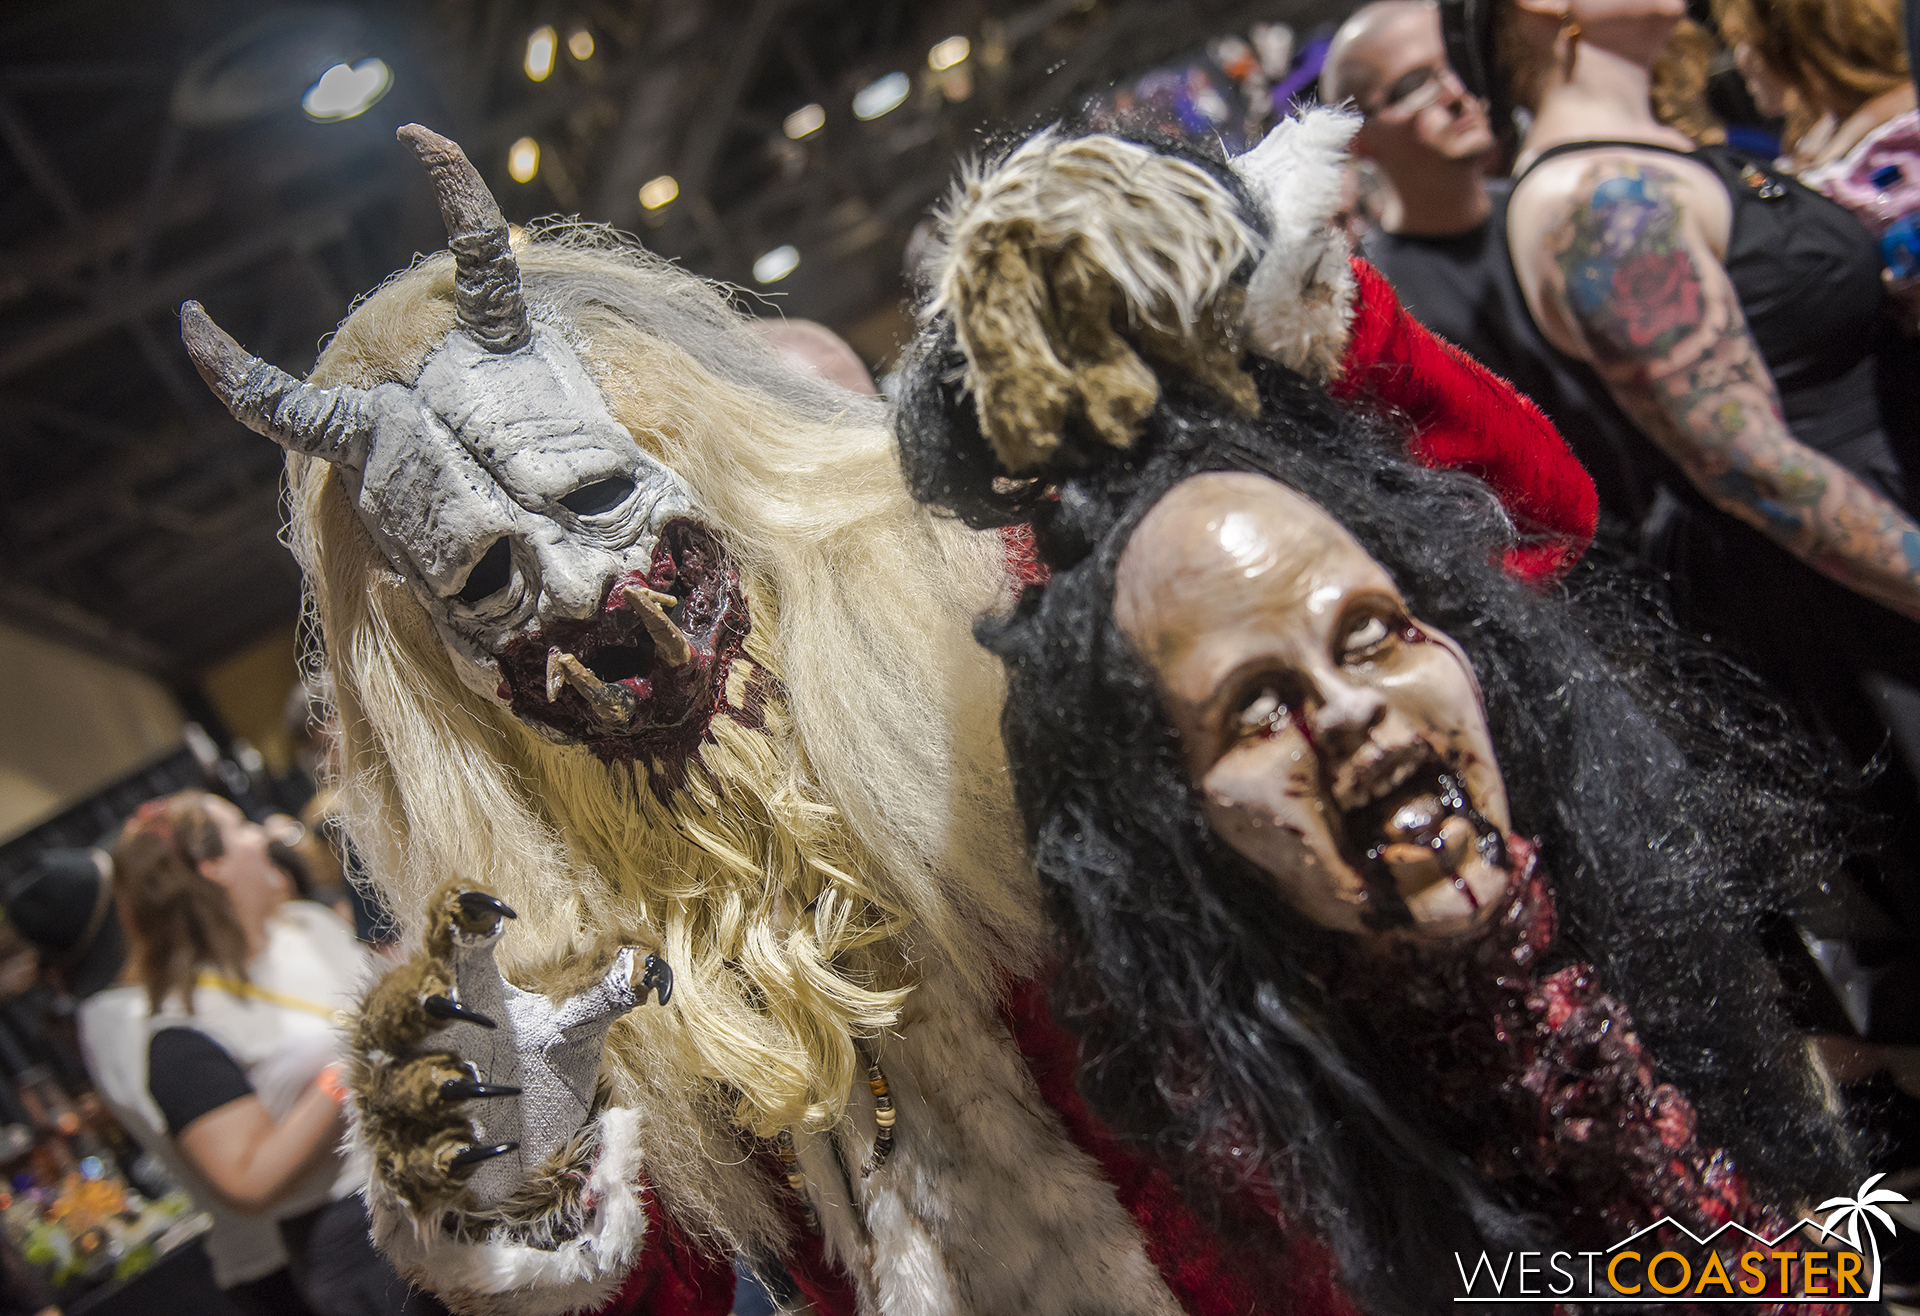 Another Midsummer Scream, another Krampus sighting. And a bloody victim!